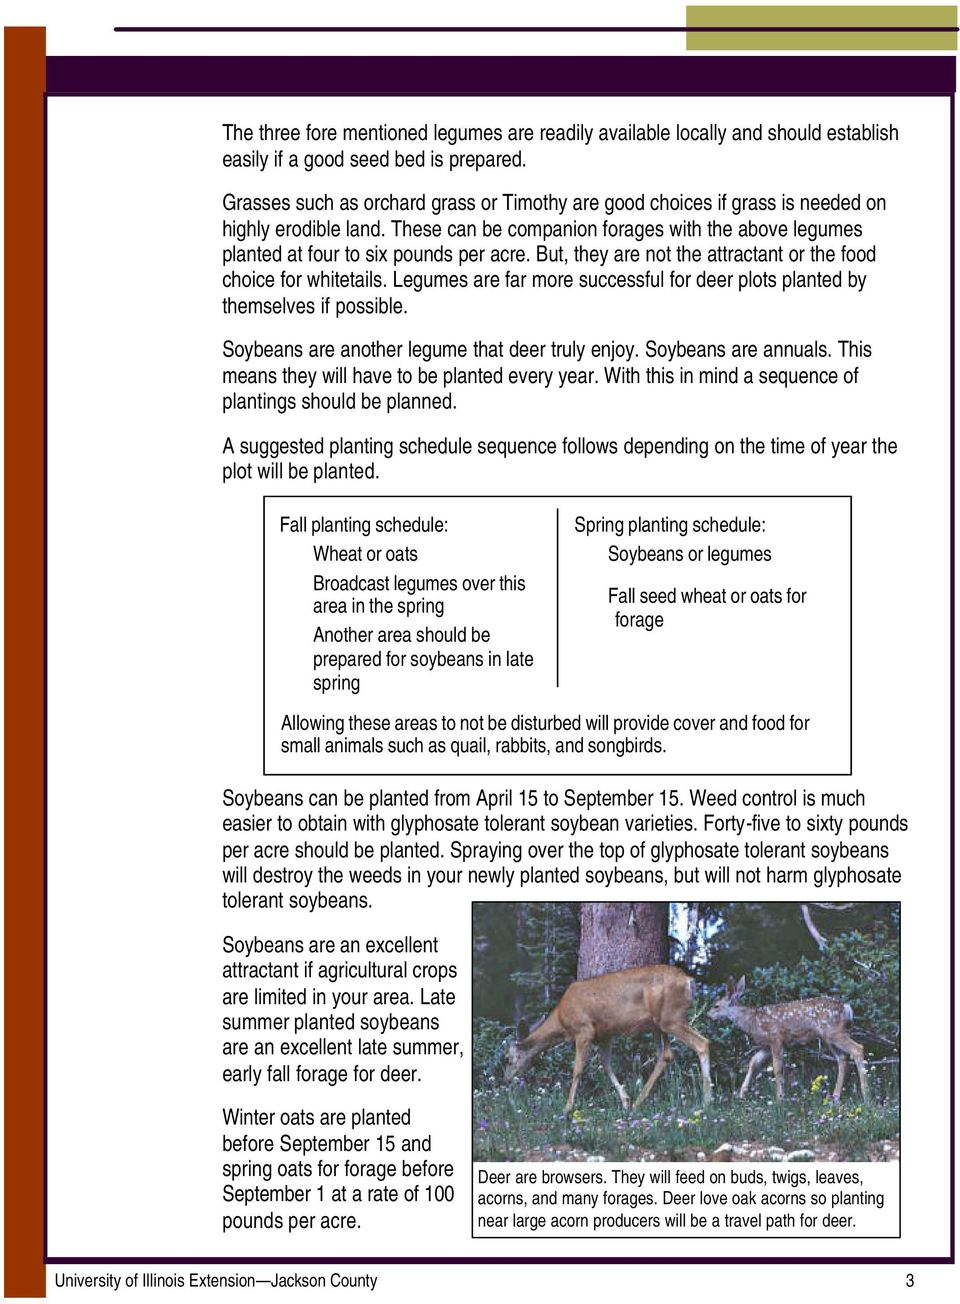 But, they are not the attractant or the food choice for whitetails. Legumes are far more successful for deer plots planted by themselves if possible. Soybeans are another legume that deer truly enjoy.